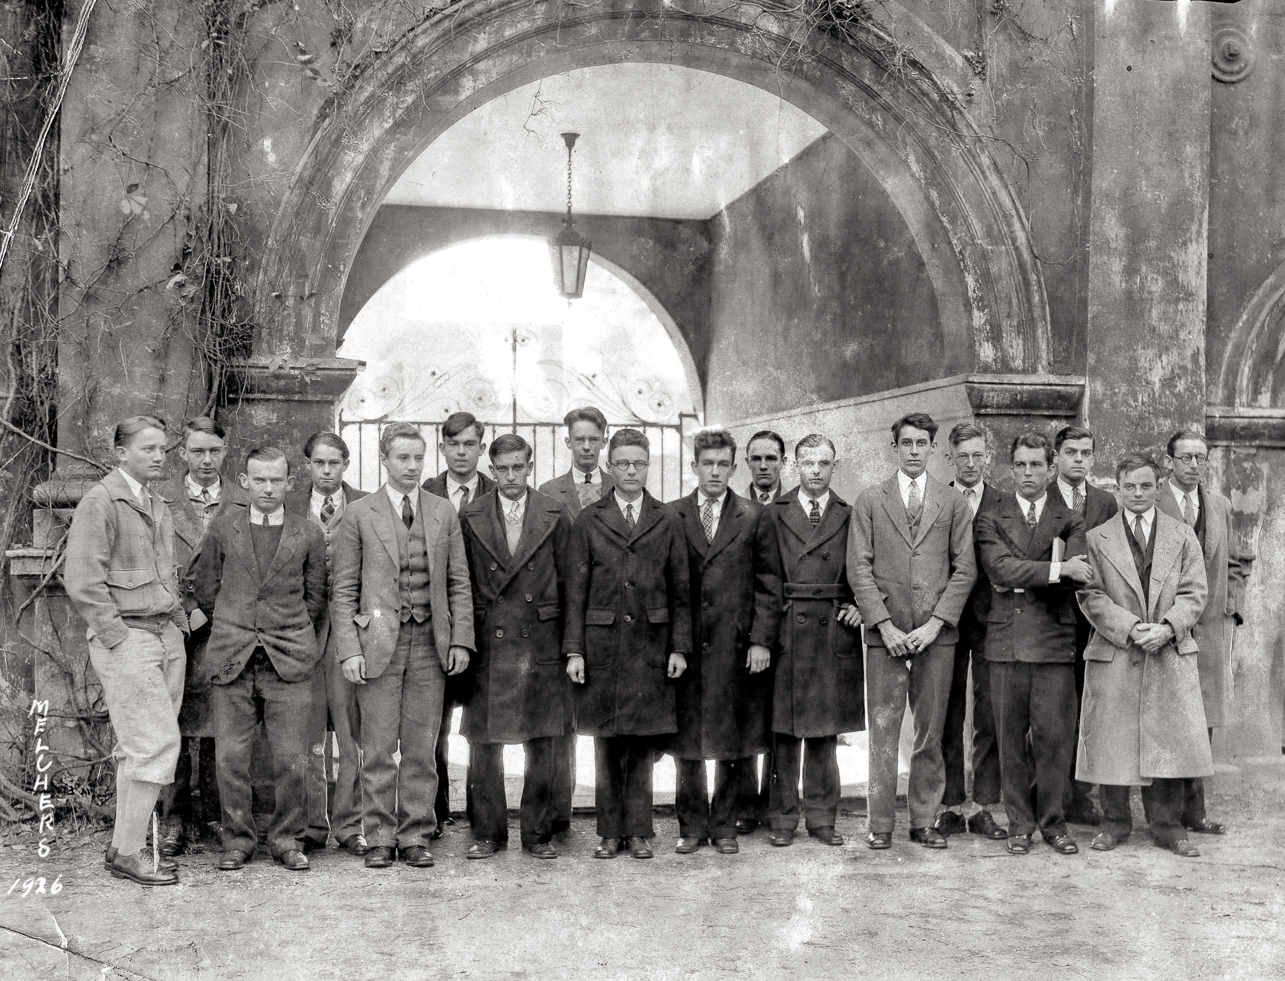 Group of students from 1926 stand in front of Porter's Lodge